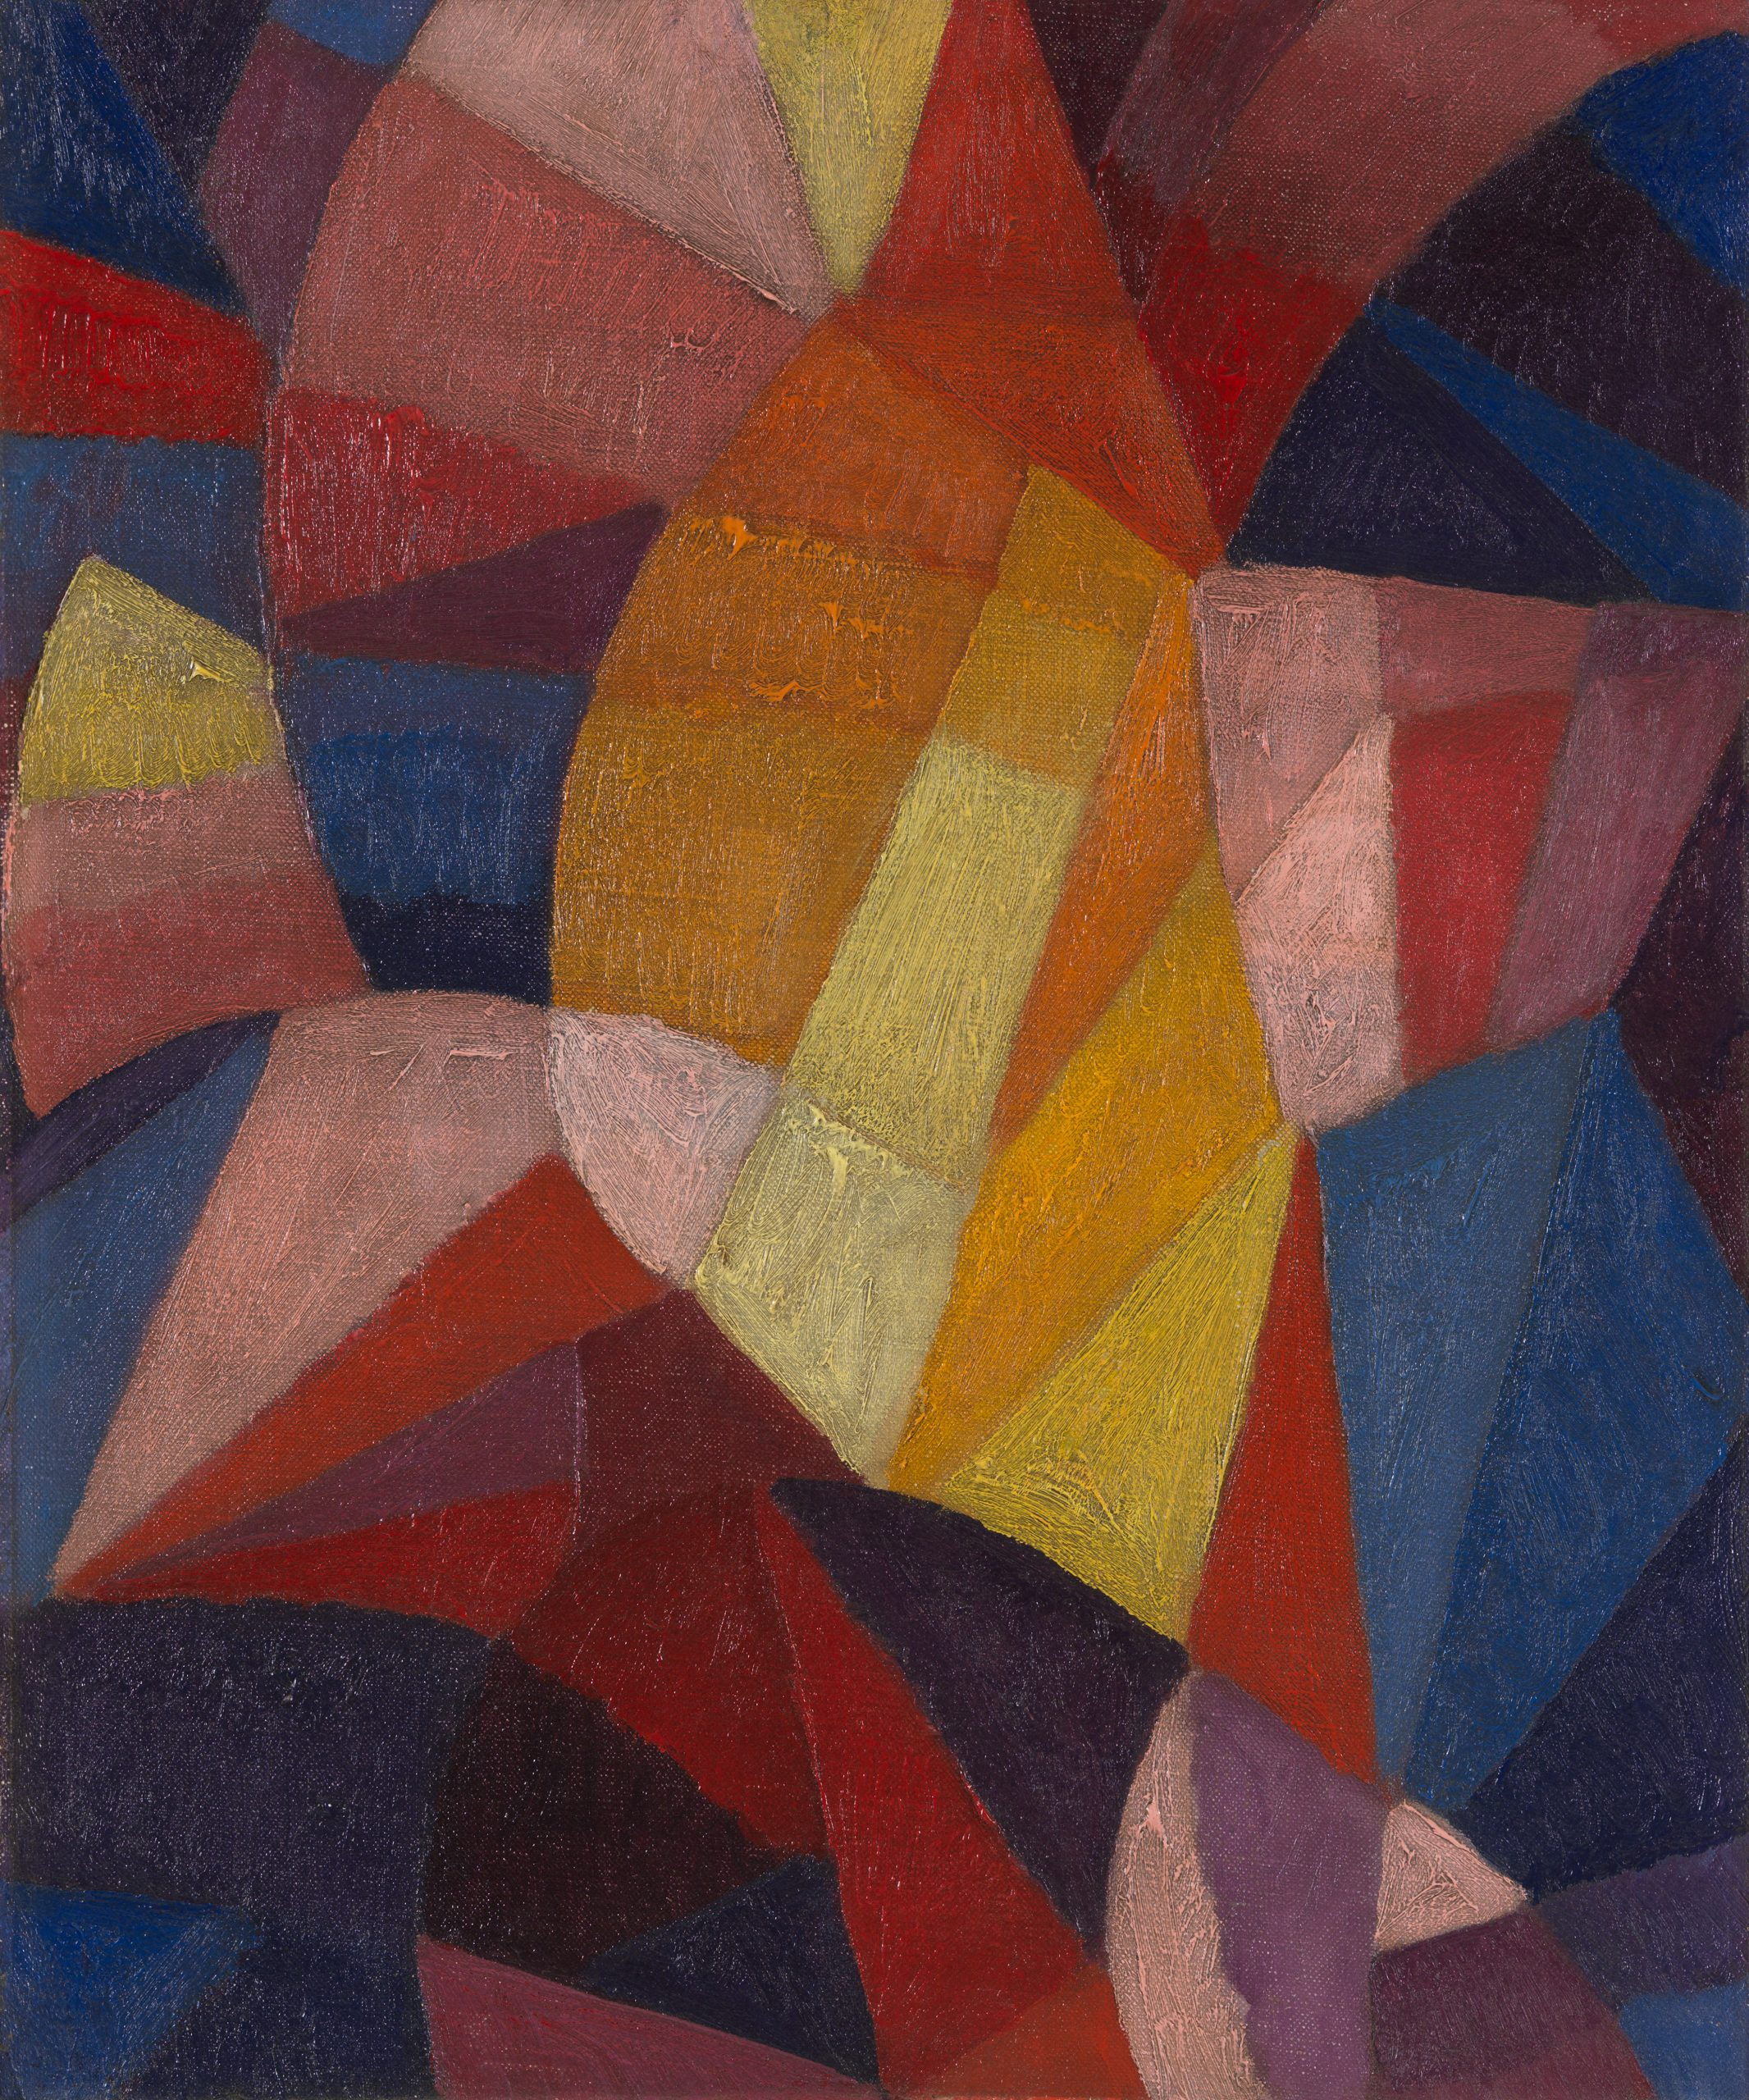 Geometric shapes of purple, pink, red, yellow, and blue with visible brushstrokes fill the canvas.